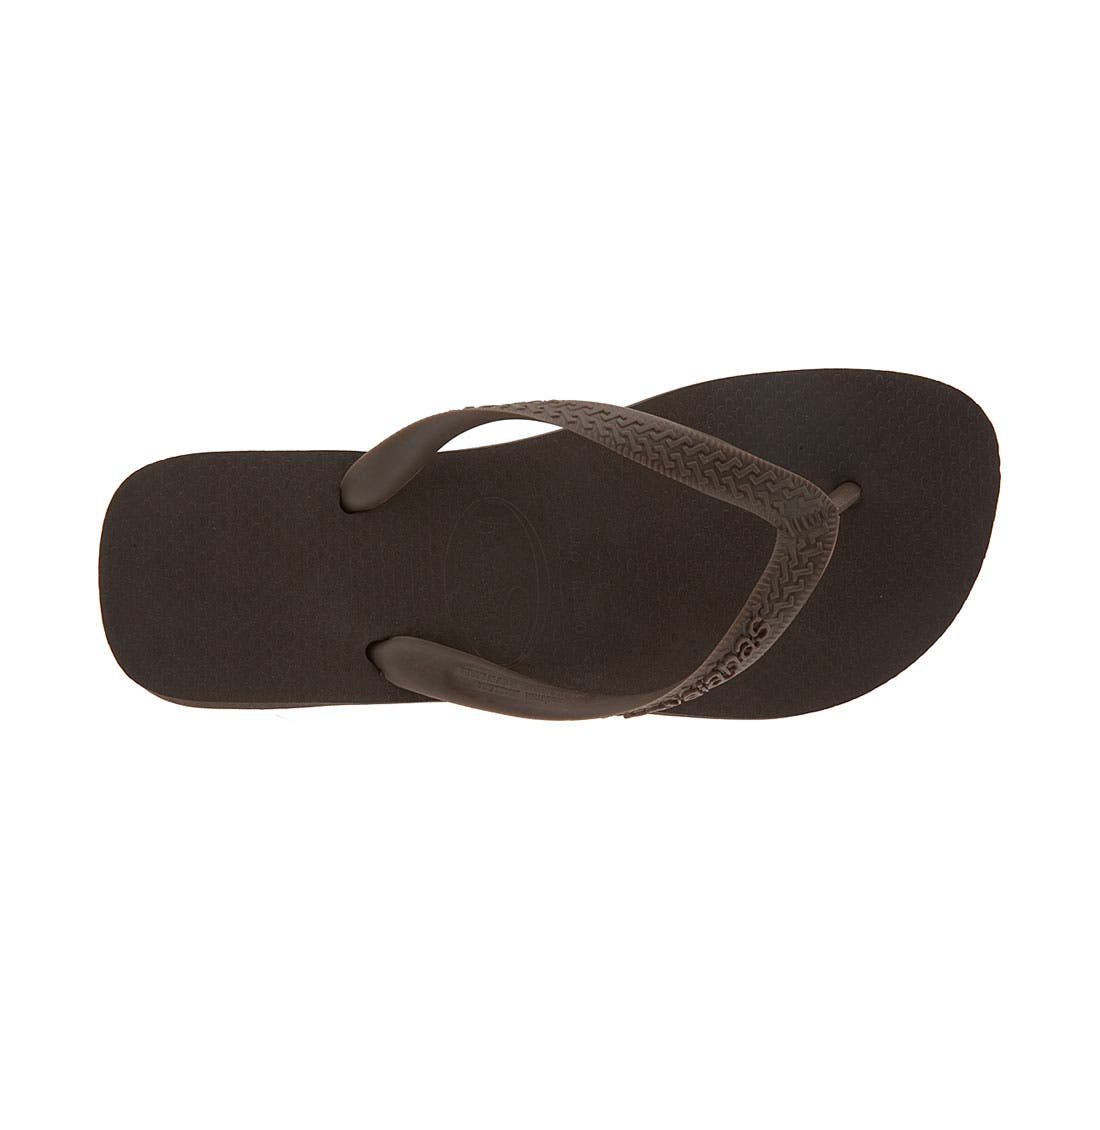 Alternate Image 3  - Havaianas 'Top' Sandal (Women)